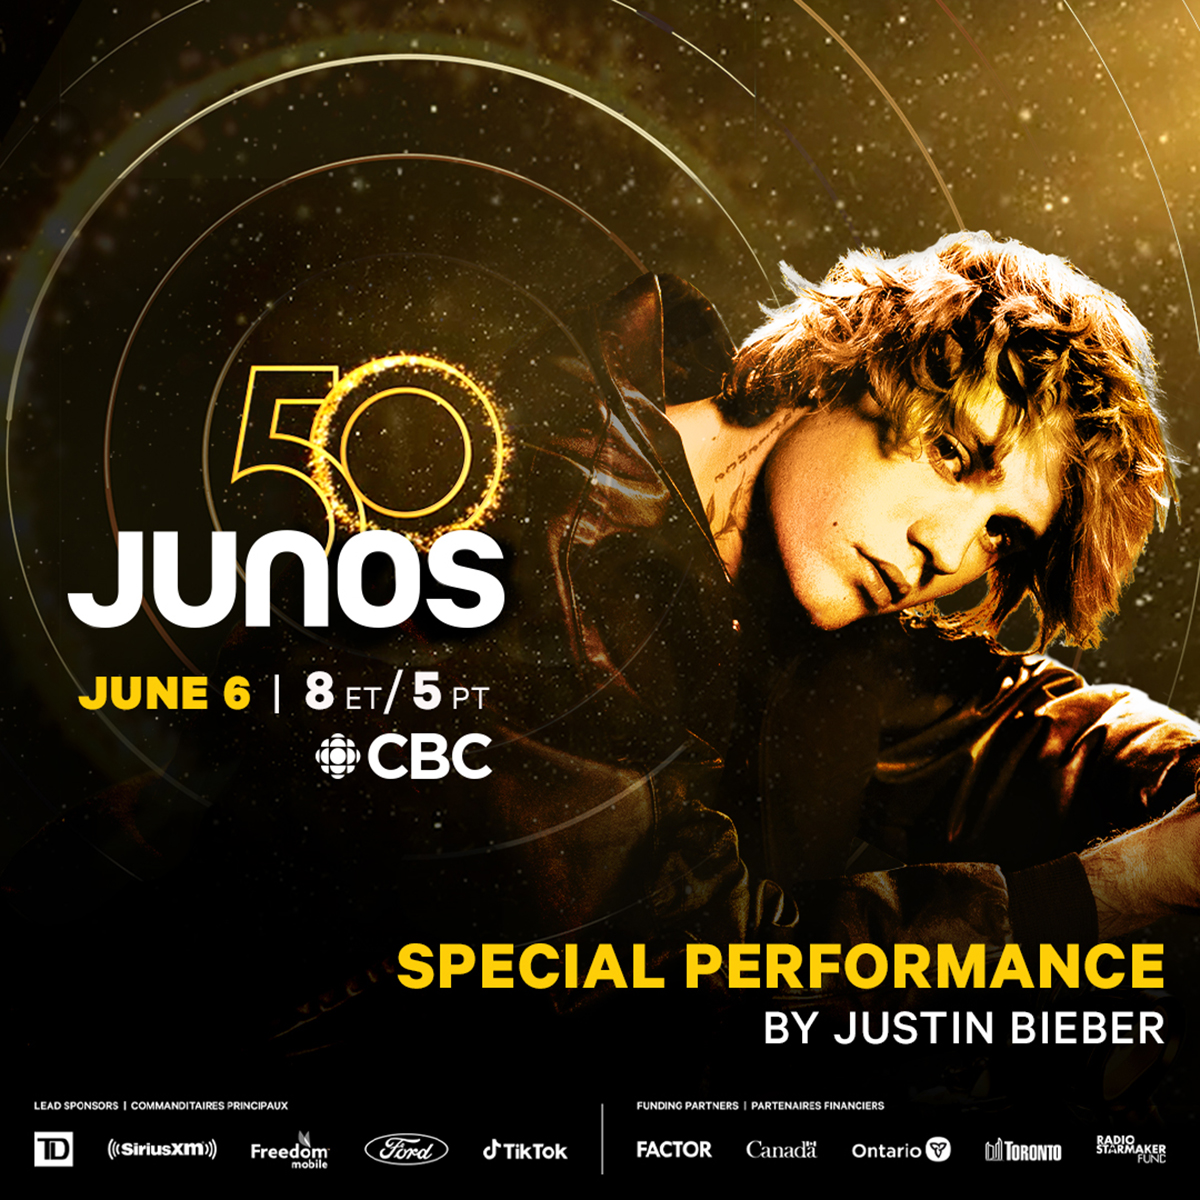 Justin Bieber to perform at The 50th Annual JUNO Awards Broadcast on CBC